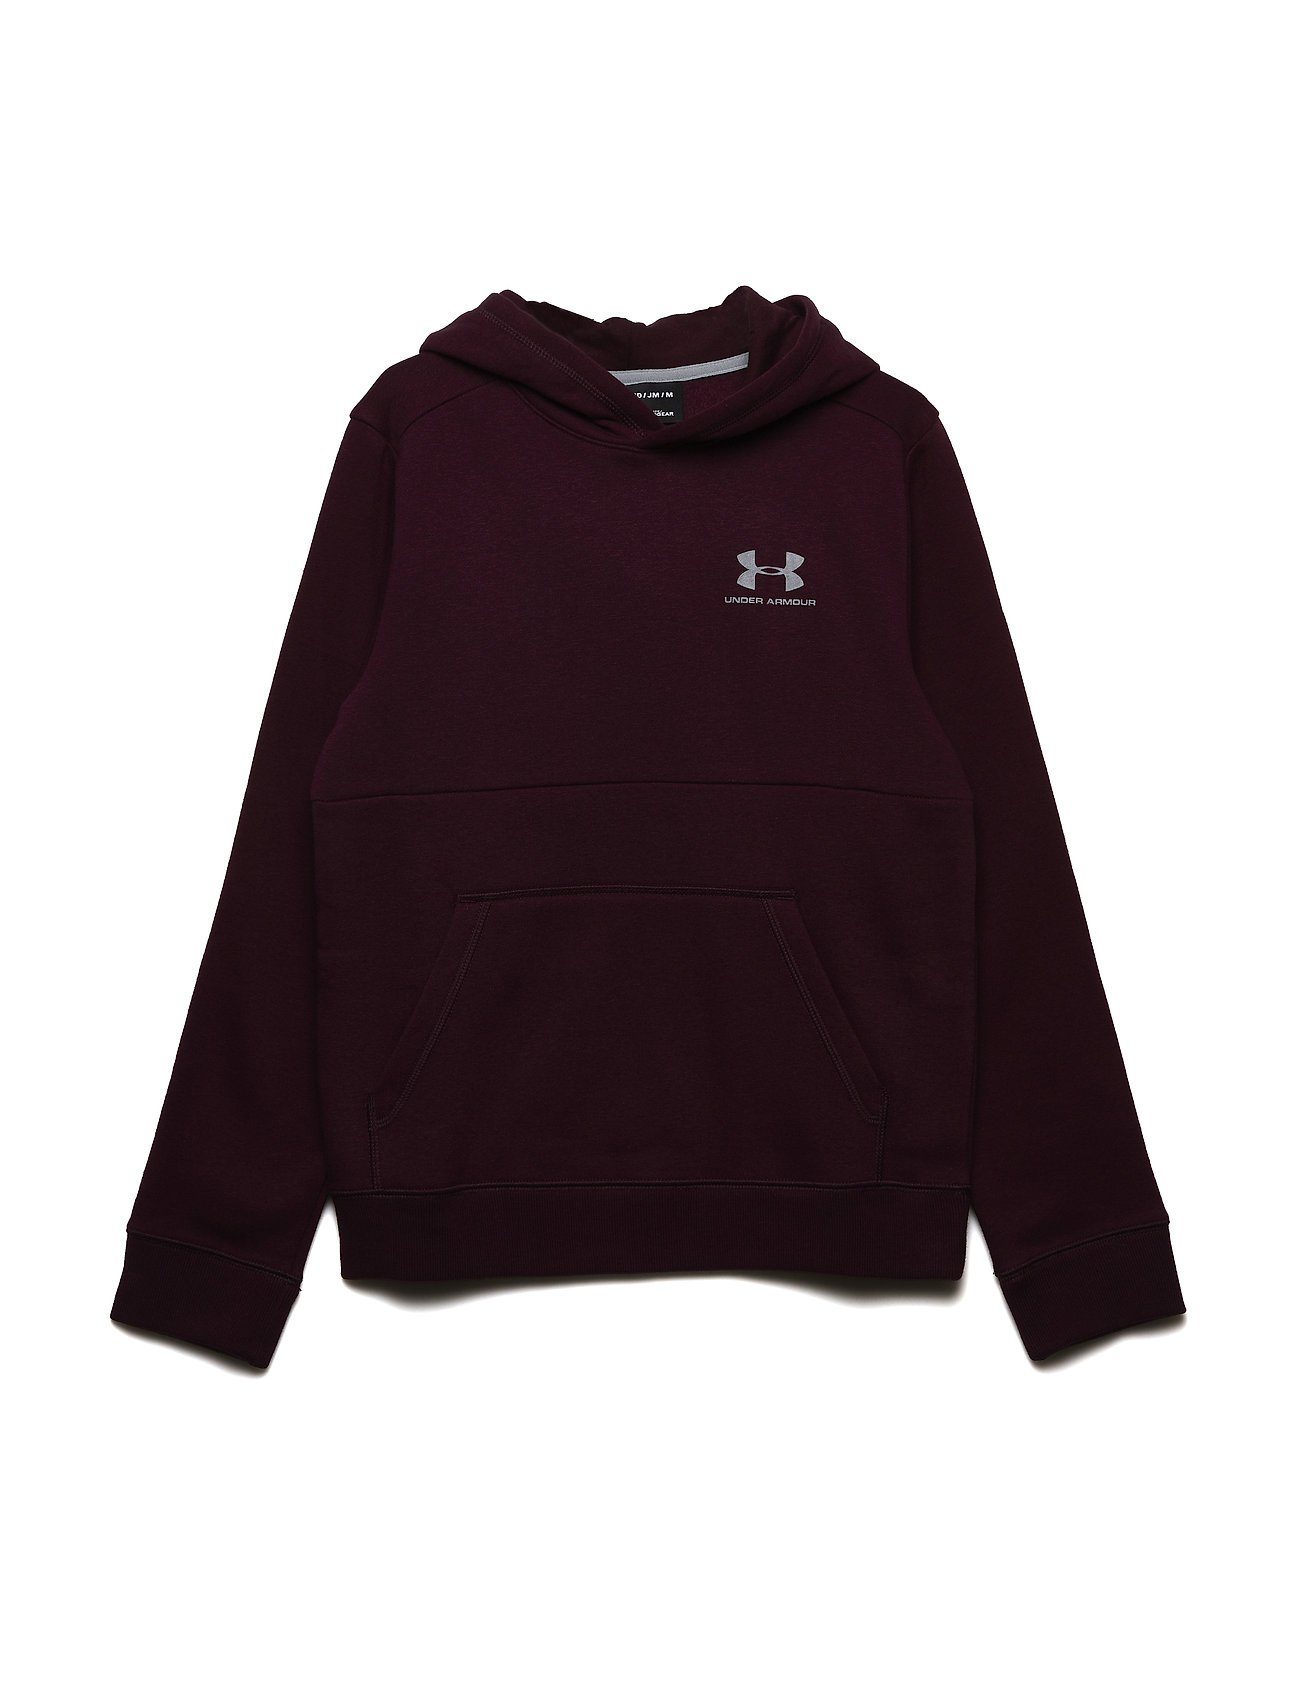 Under Armour EU COTTON FLEECE HOODY - RED